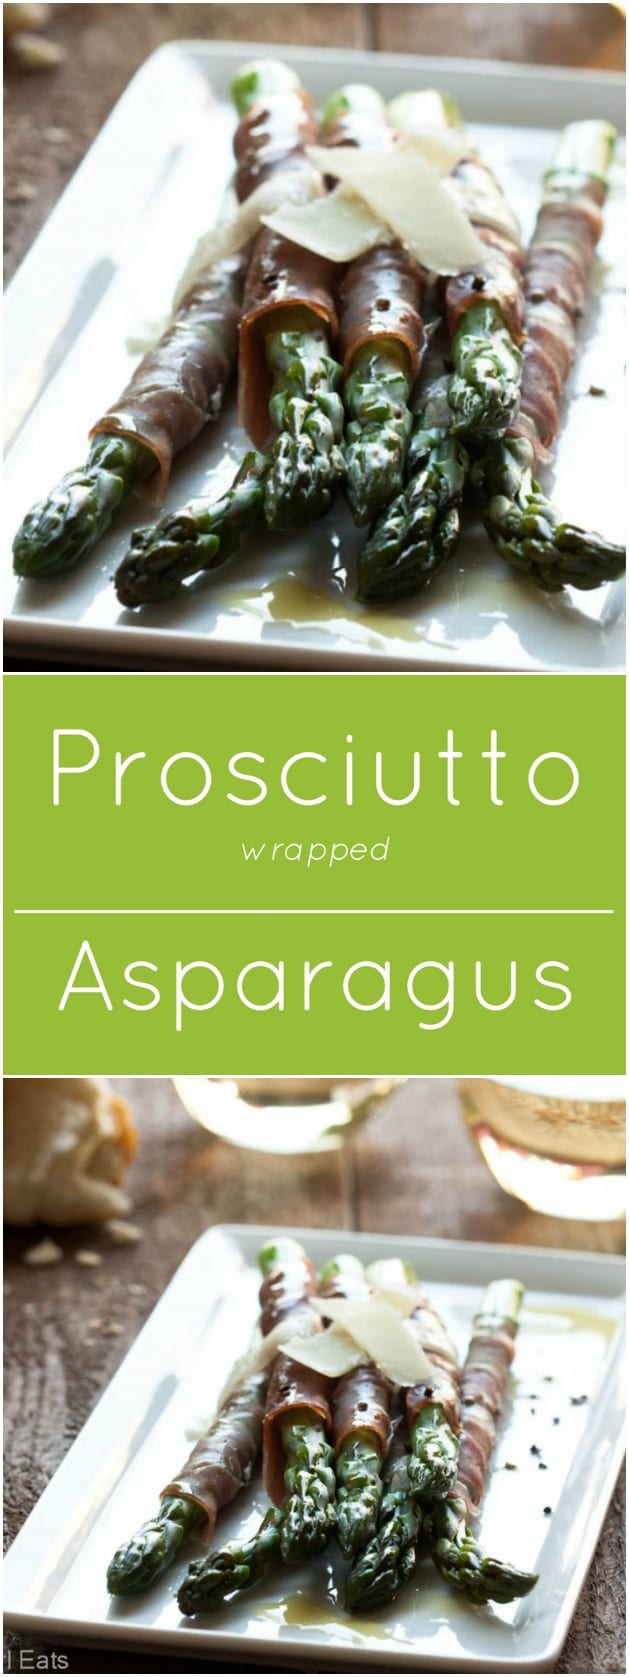 Prosciutto wrapped Asparagus. Gluten free, low carb and paleo.